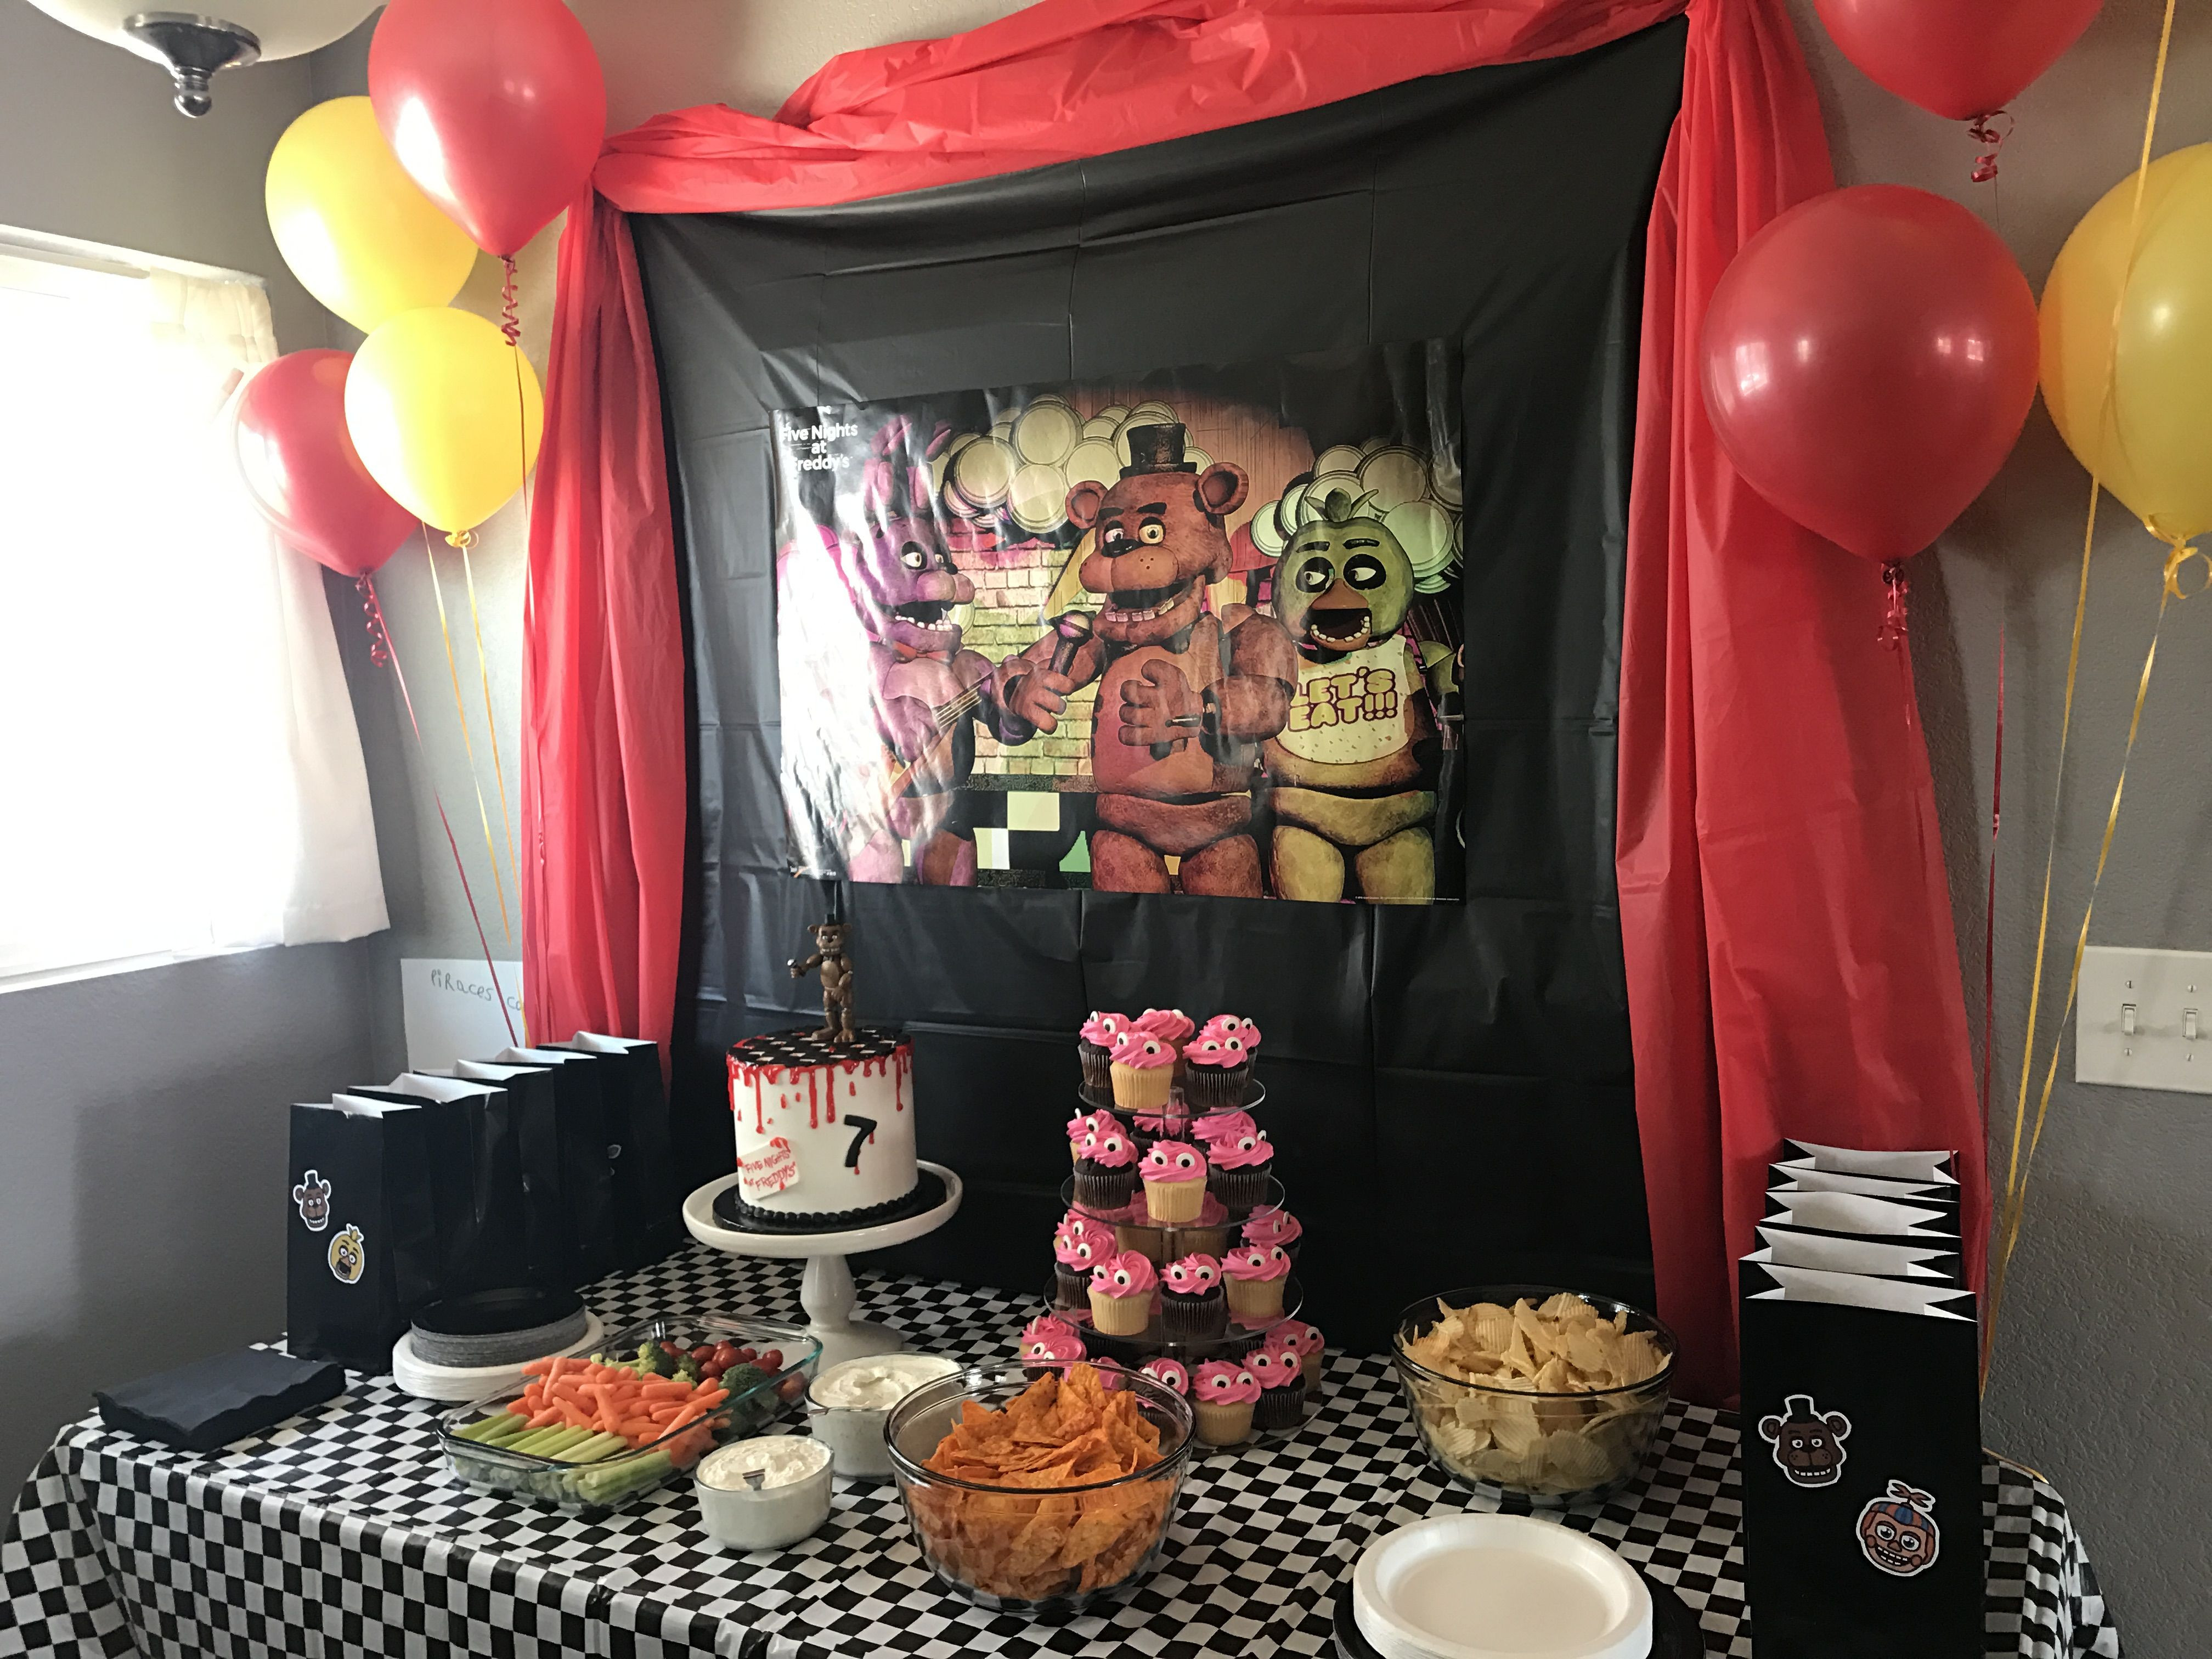 Best ideas about Five Nights At Freddy's Birthday Party Decorations . Save or Pin Five Nights at Freddy s Birthday FNAF Birthday Now.